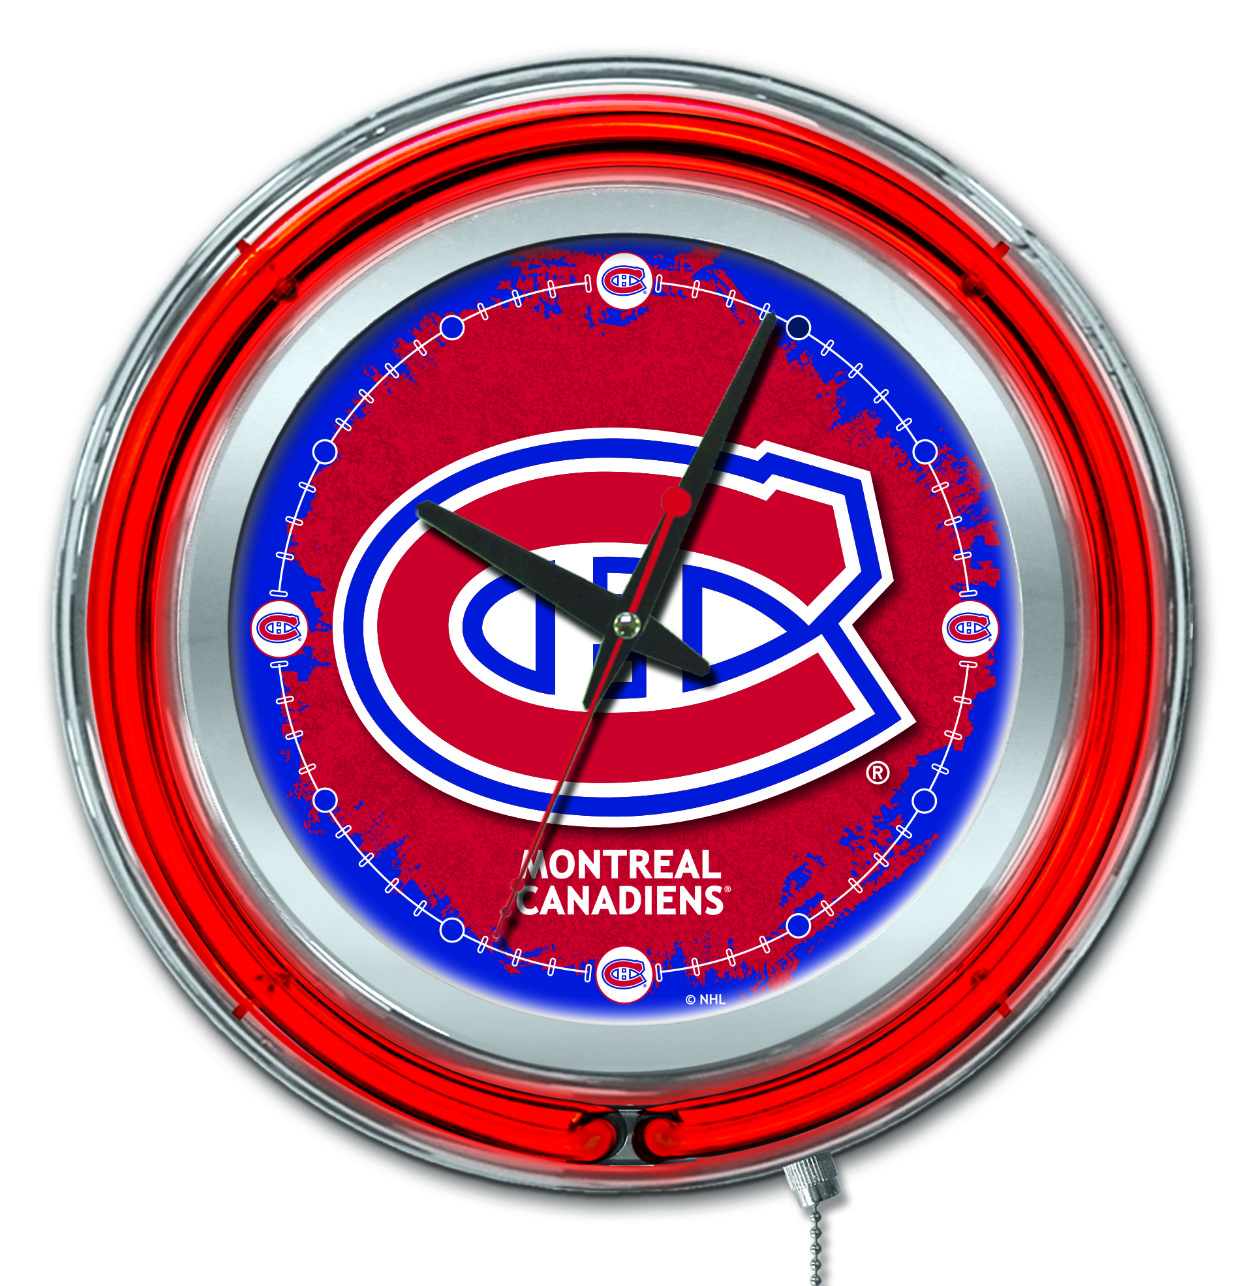 Montreal Canadiens Double Neon Ring 15quot dia Logo Clock  : Clk15MonCan from zerbee.com size 1174 x 1200 jpeg 174kB